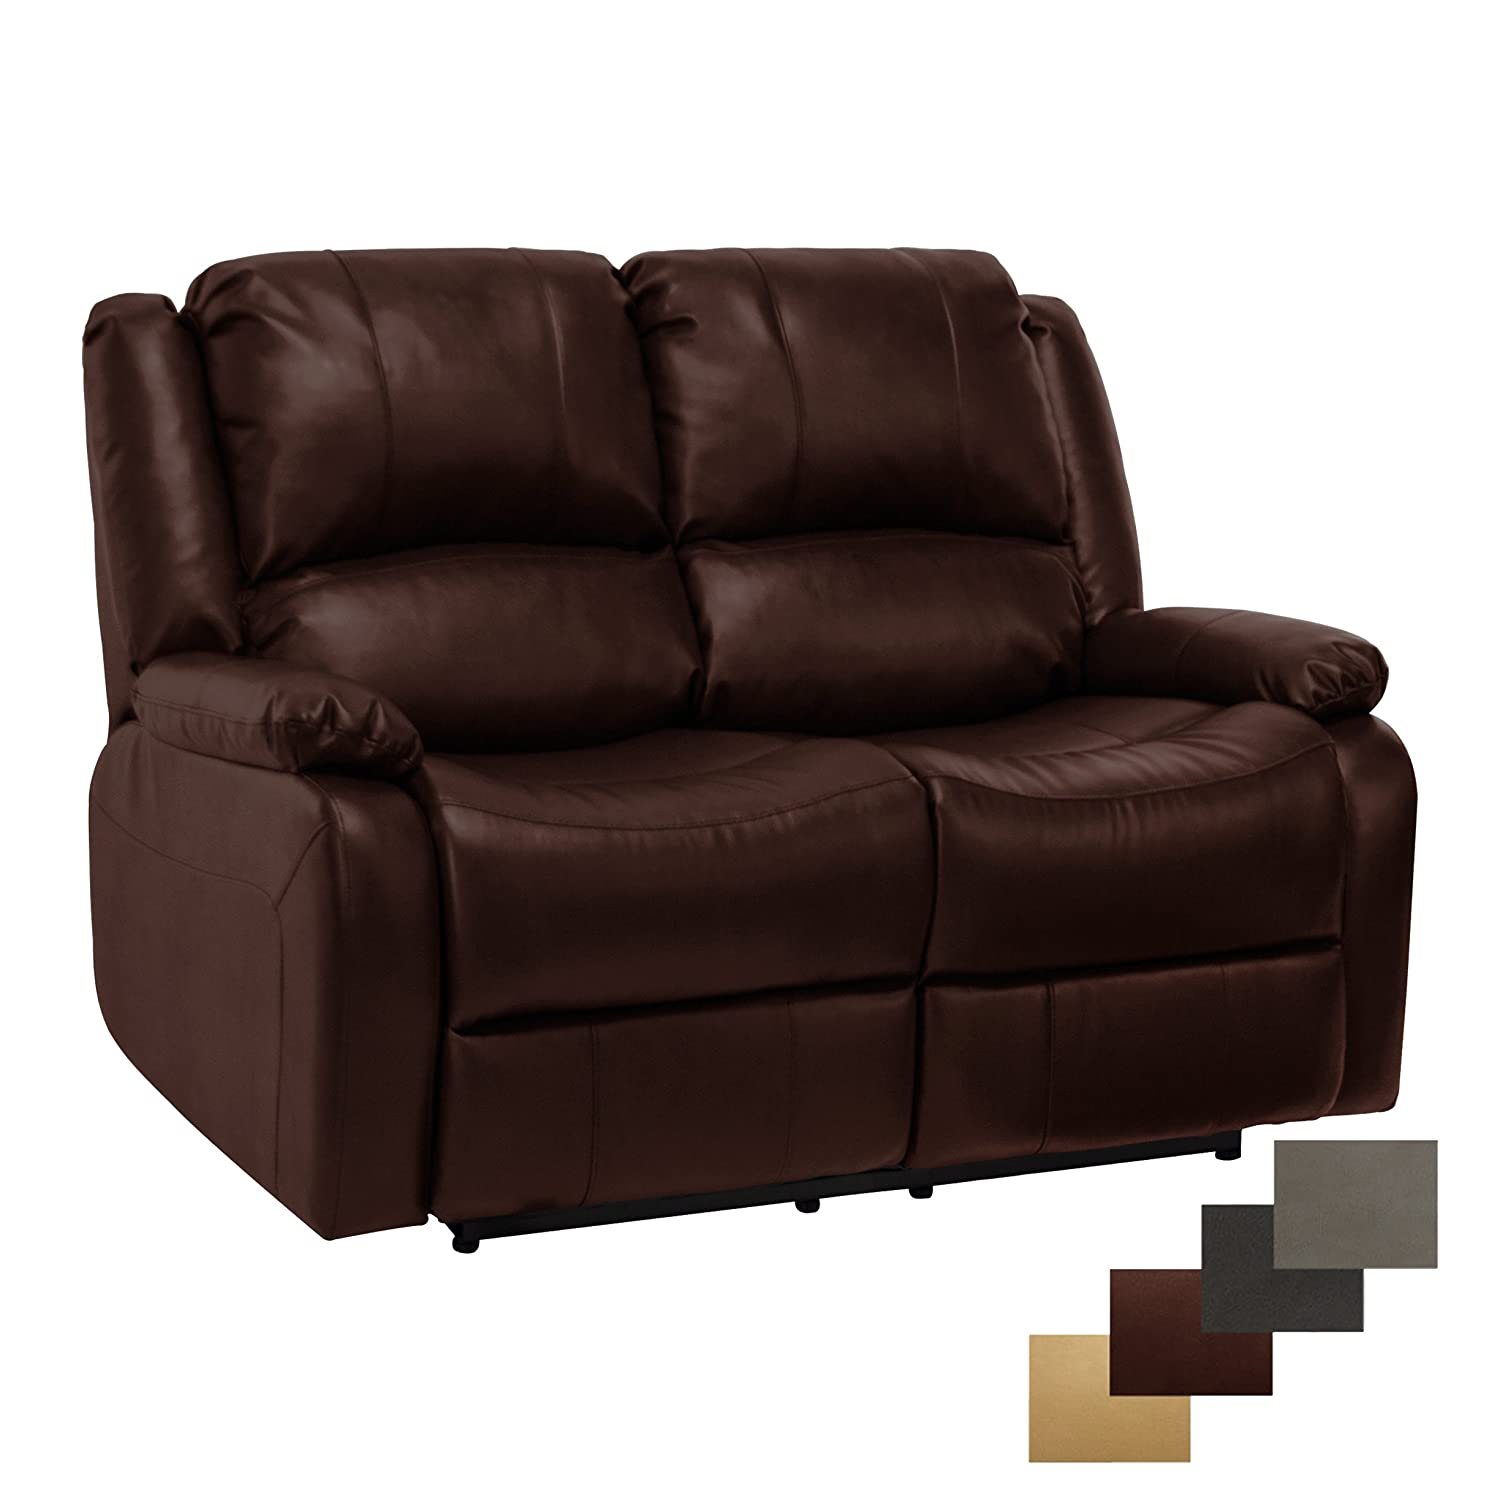 loveseat comfort contemporary console extra power furniture and outstanding entrin design info reclining wide double with recliner cup storage chair